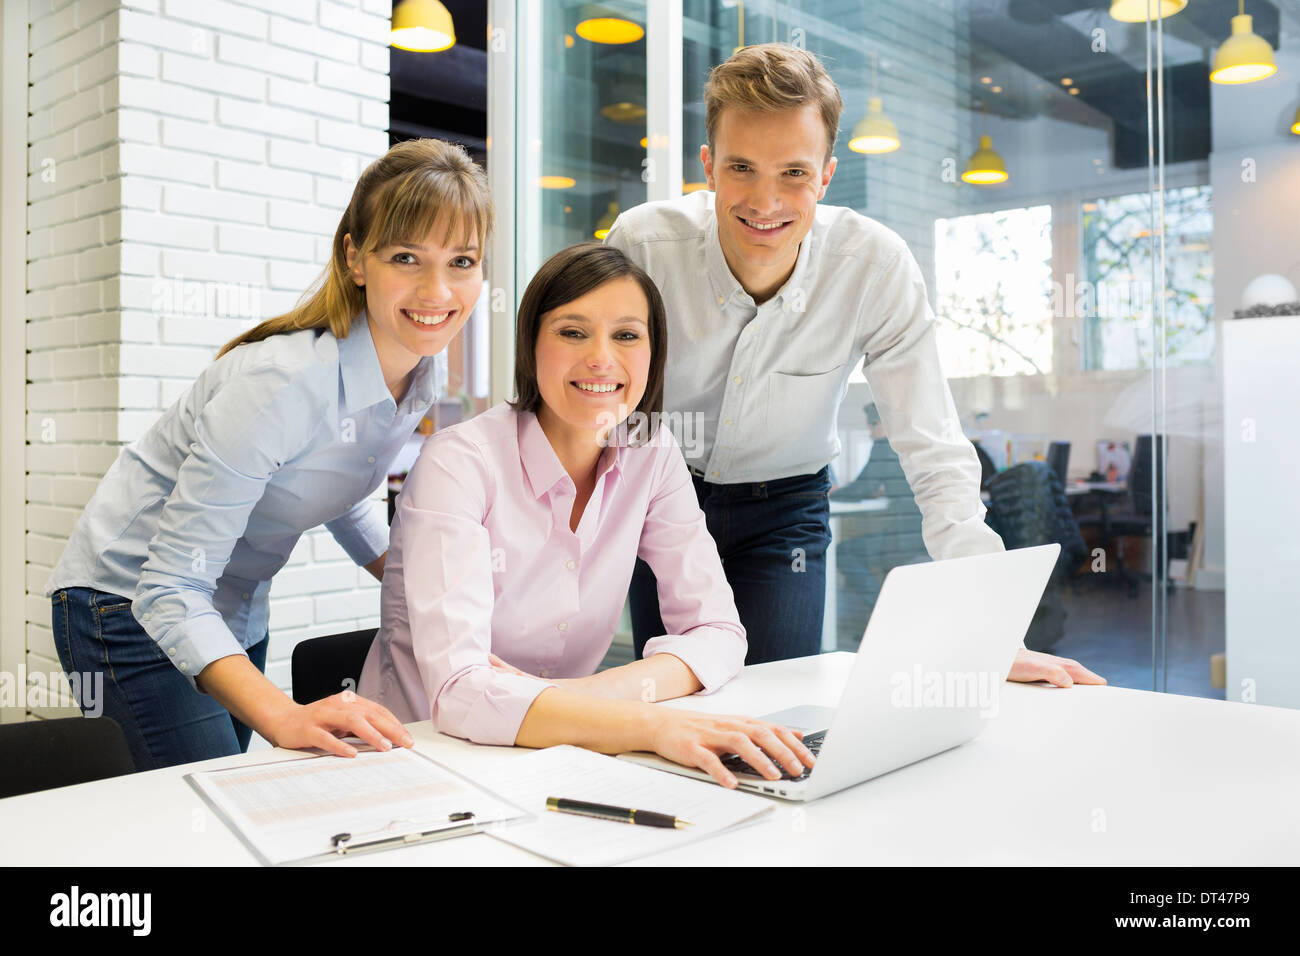 business man woman computer desk office meeting Stock Photo ...